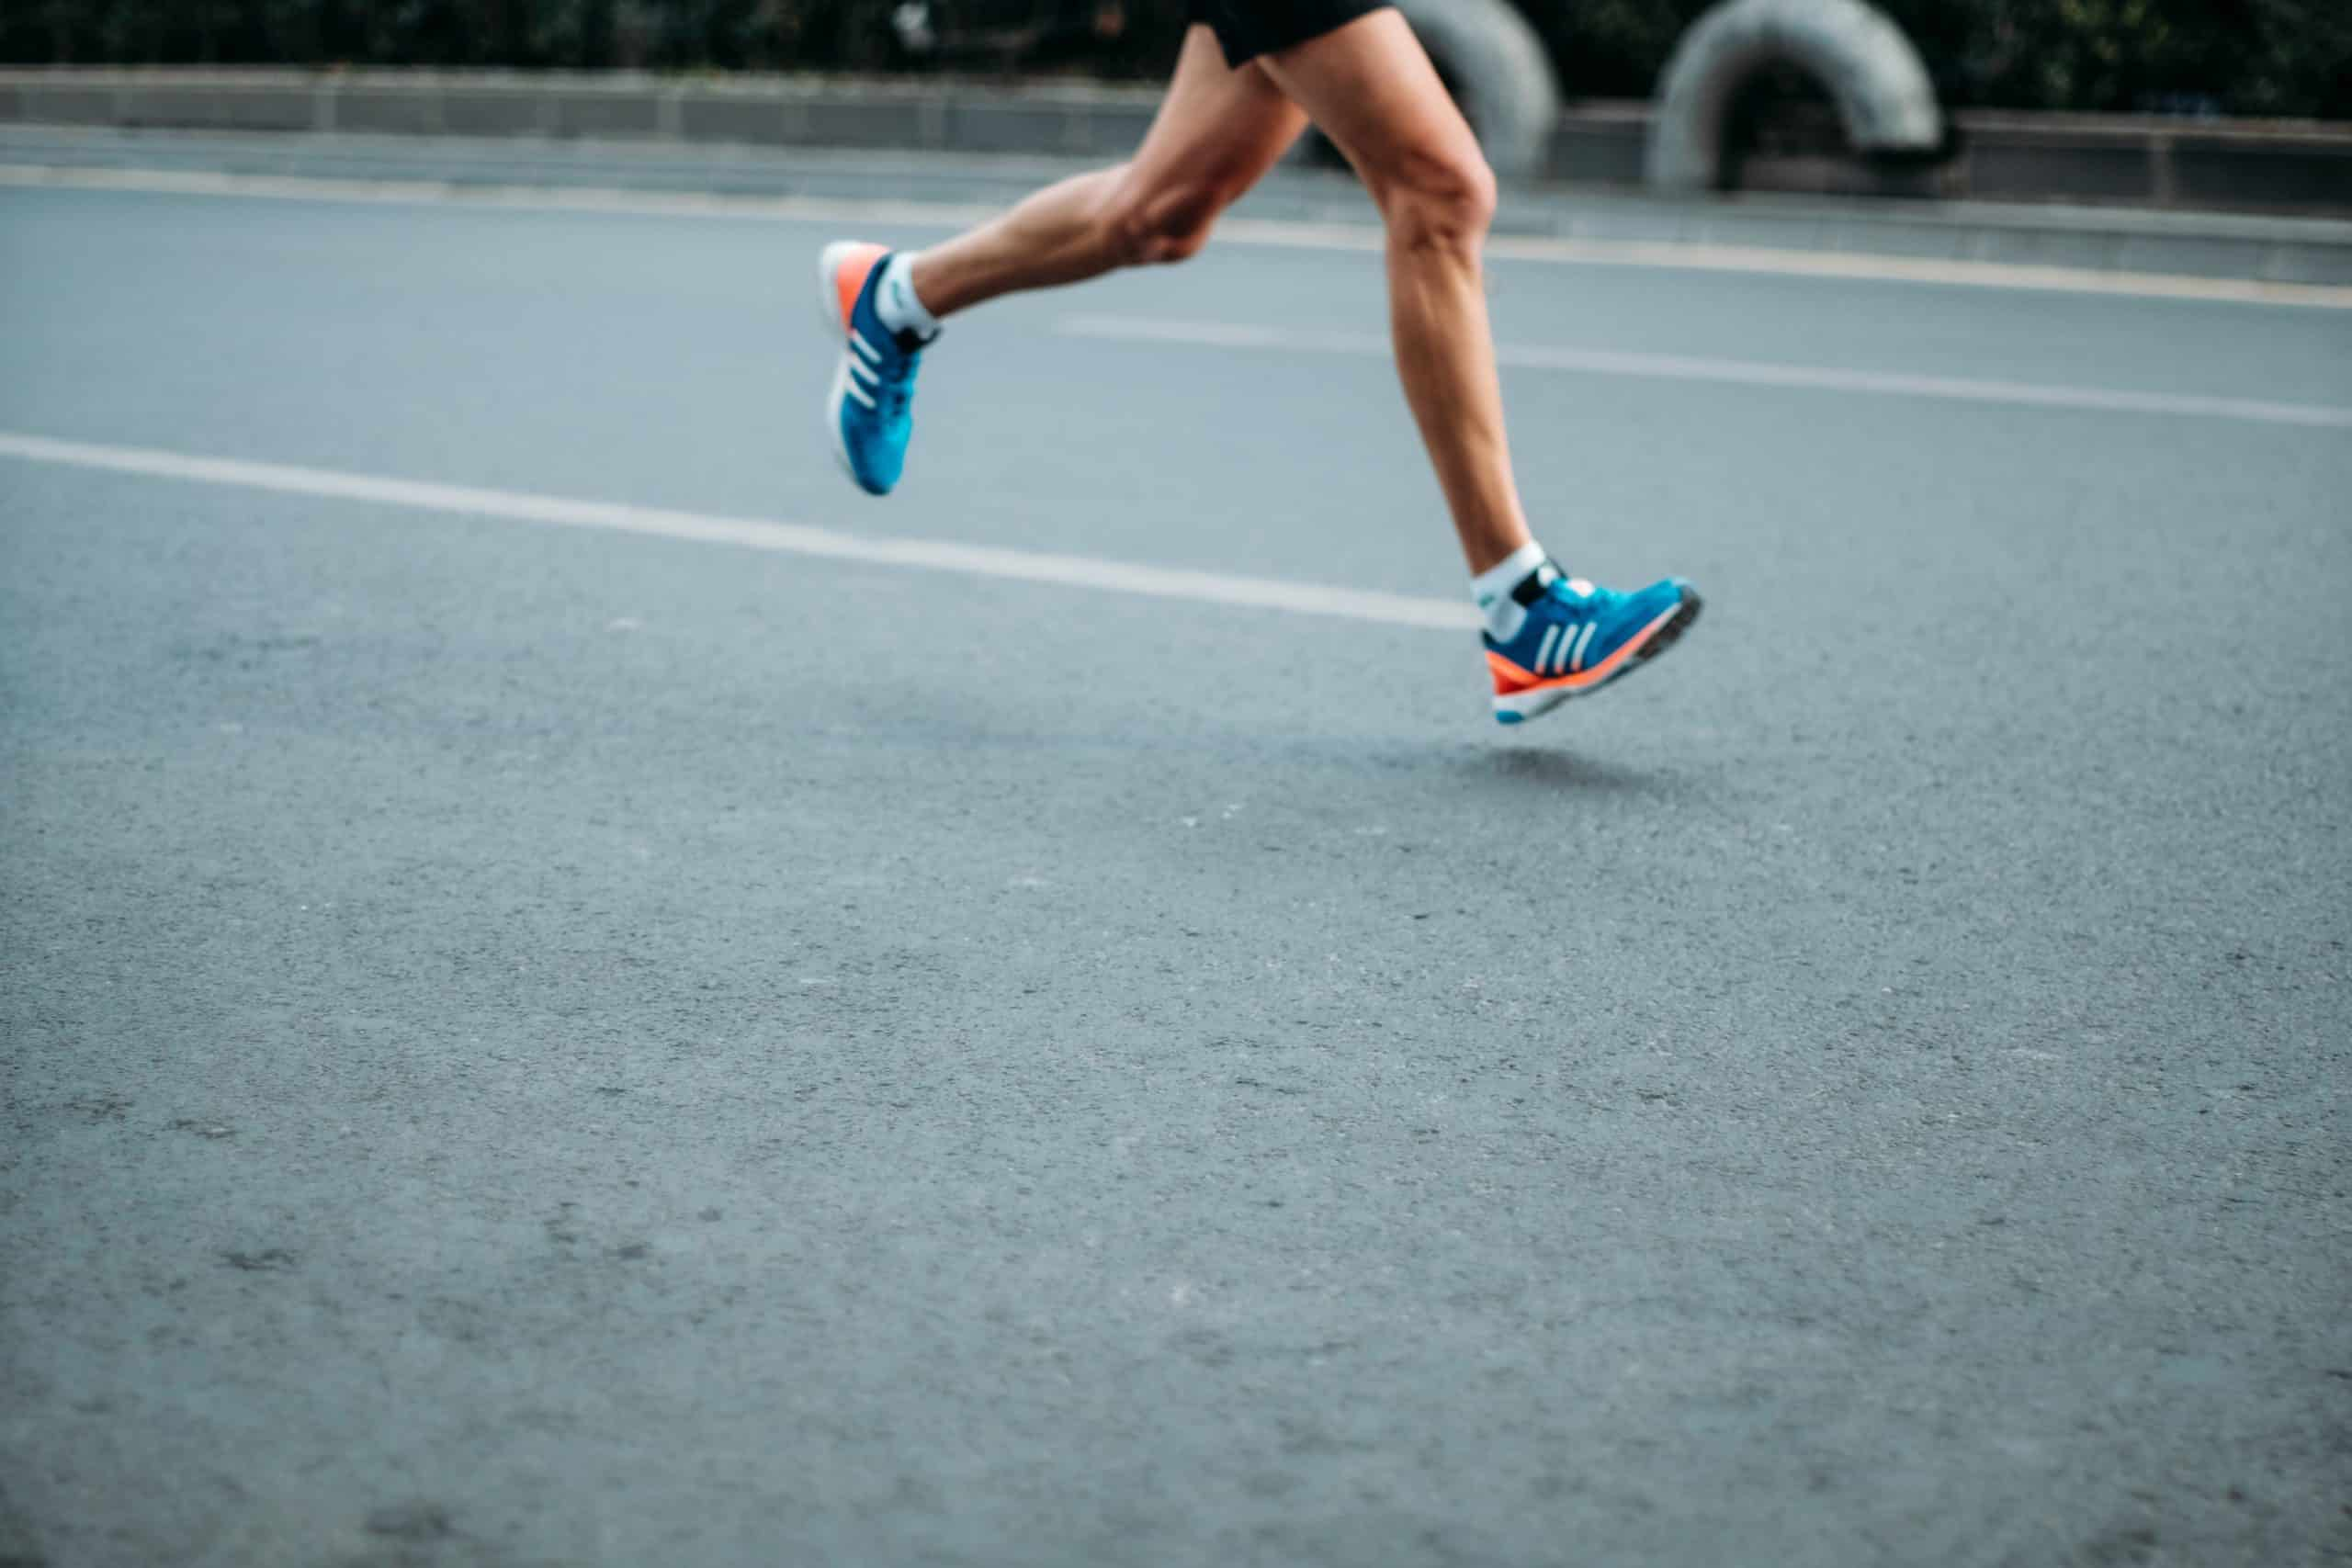 Improvements In Your Running Speed